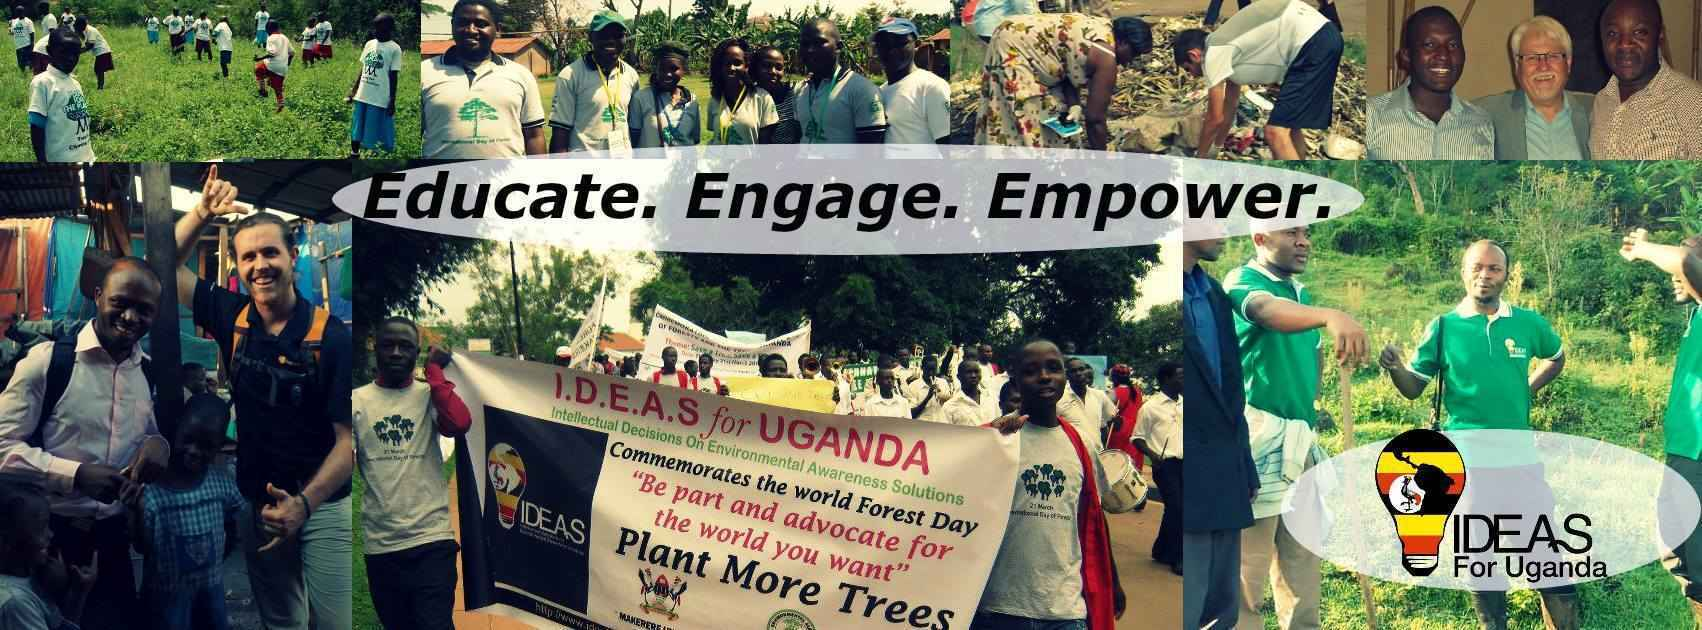 Support Environmental Action in Uganda, Africa image